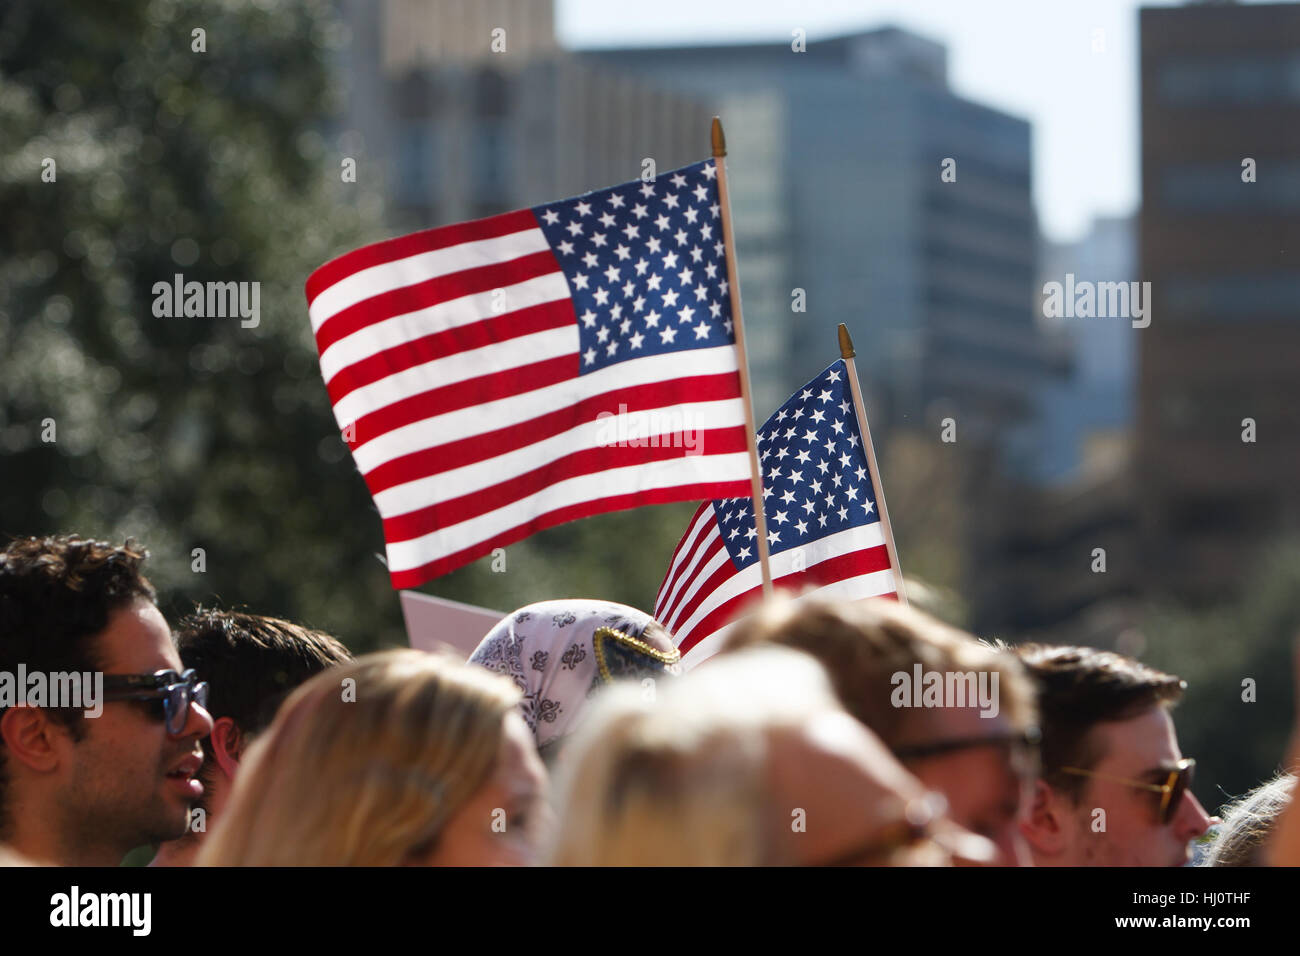 Austin, Texas, USA. January 21, 2017. Demonstrators participate in the Austin (Texas) Women's March in support - Stock Image